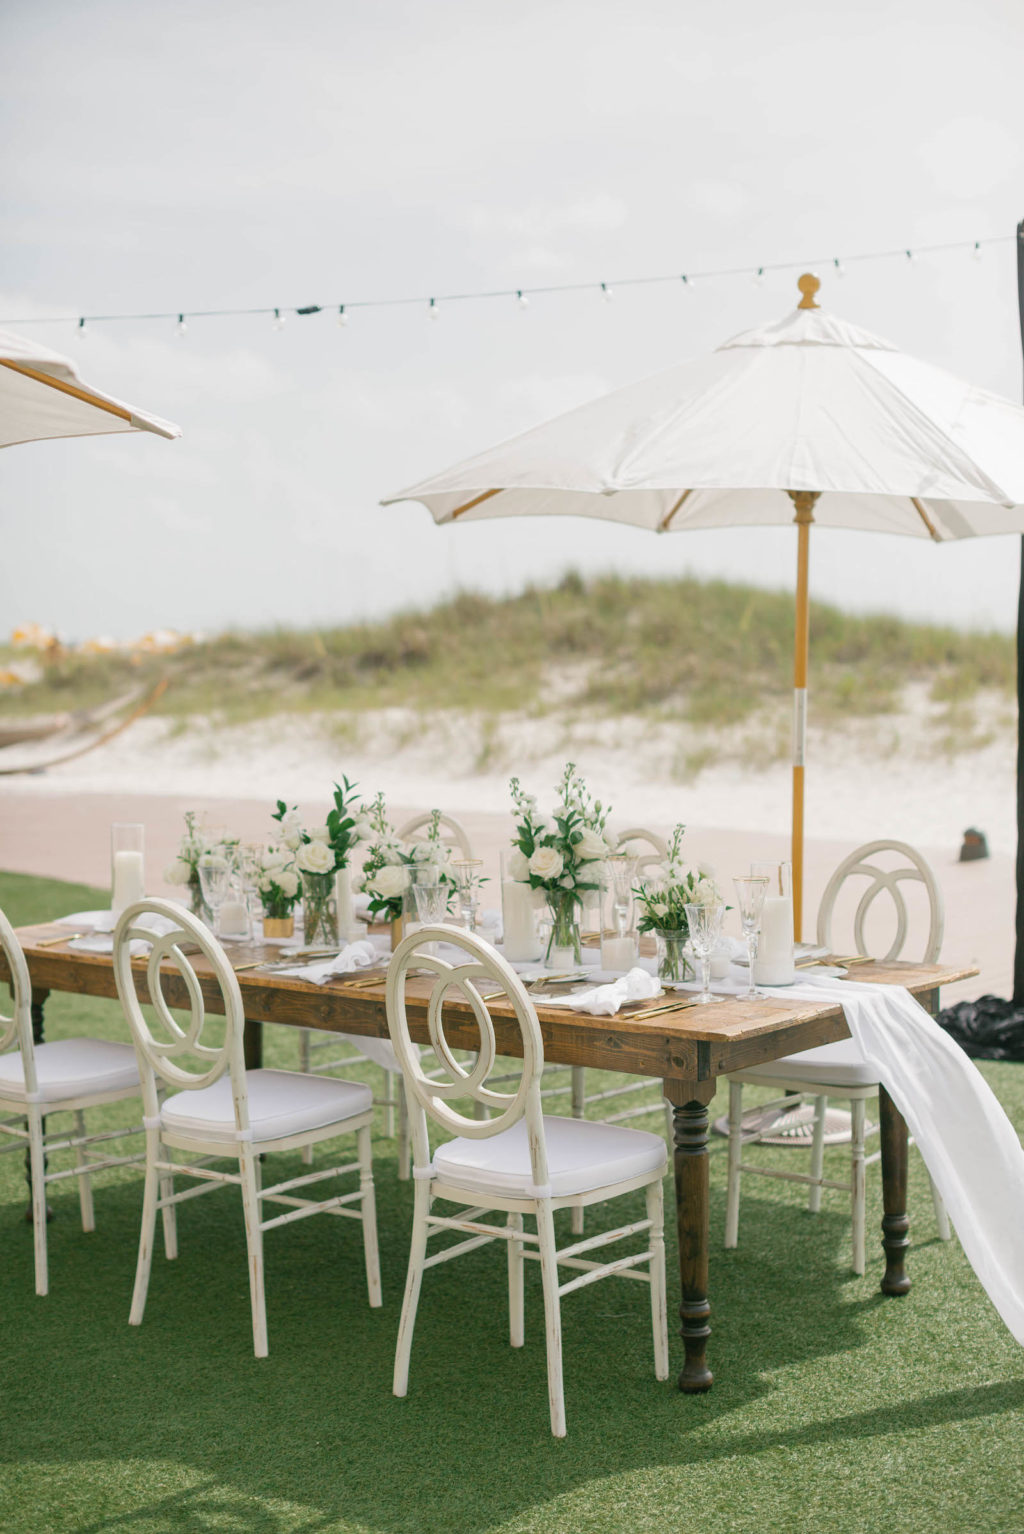 Garden-style beachside wedding reception decor, wooden farm feasting table with white table runner, white chairs, umbrellas, and floral centerpieces | Tampa Bay wedding planner Parties A'la Carte | Kate Ryan Event Rentals | Clearwater Beach Wedding Venue Sandpearl Resort